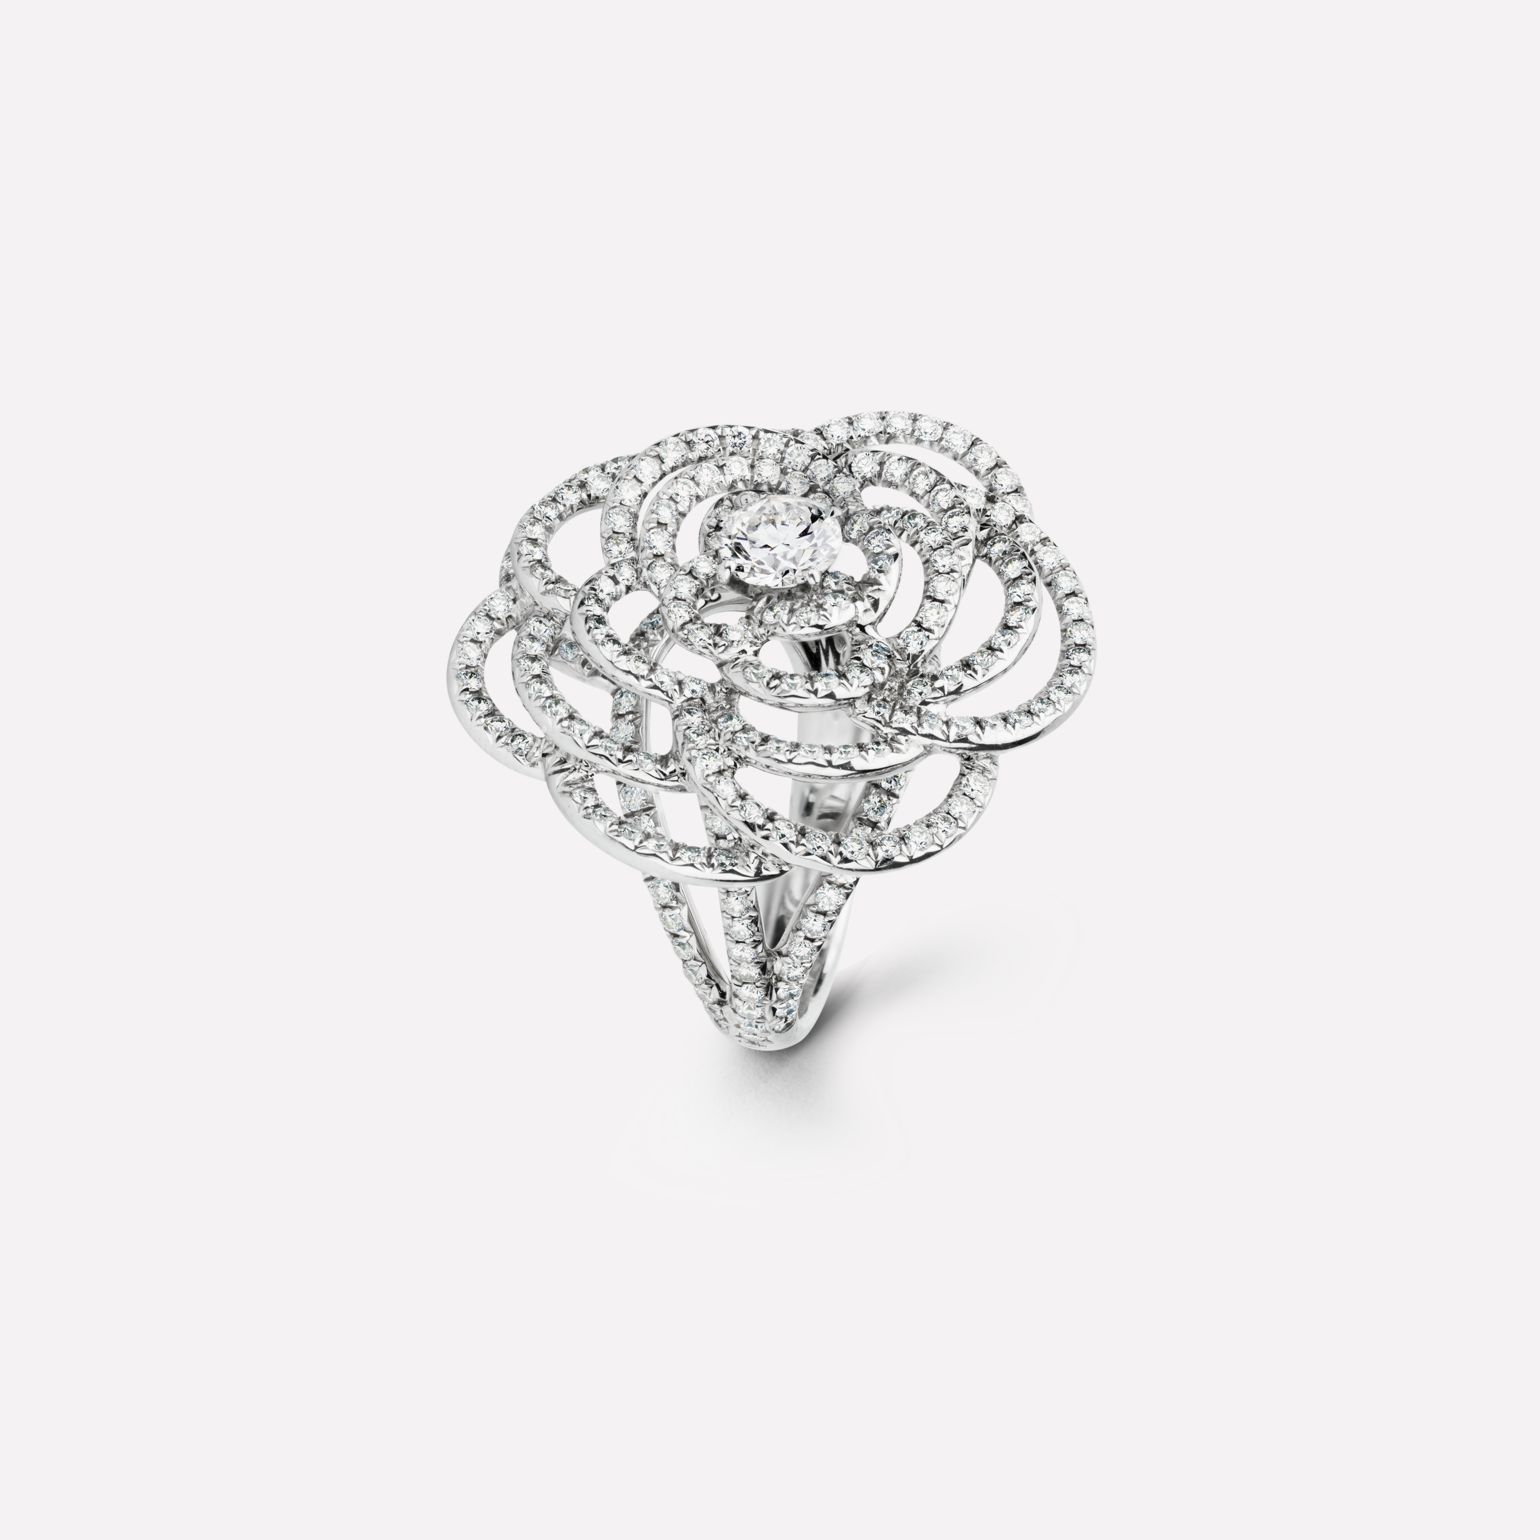 Camélia ring Fil de Camélia ring in 18K white gold and diamonds with one center diamond